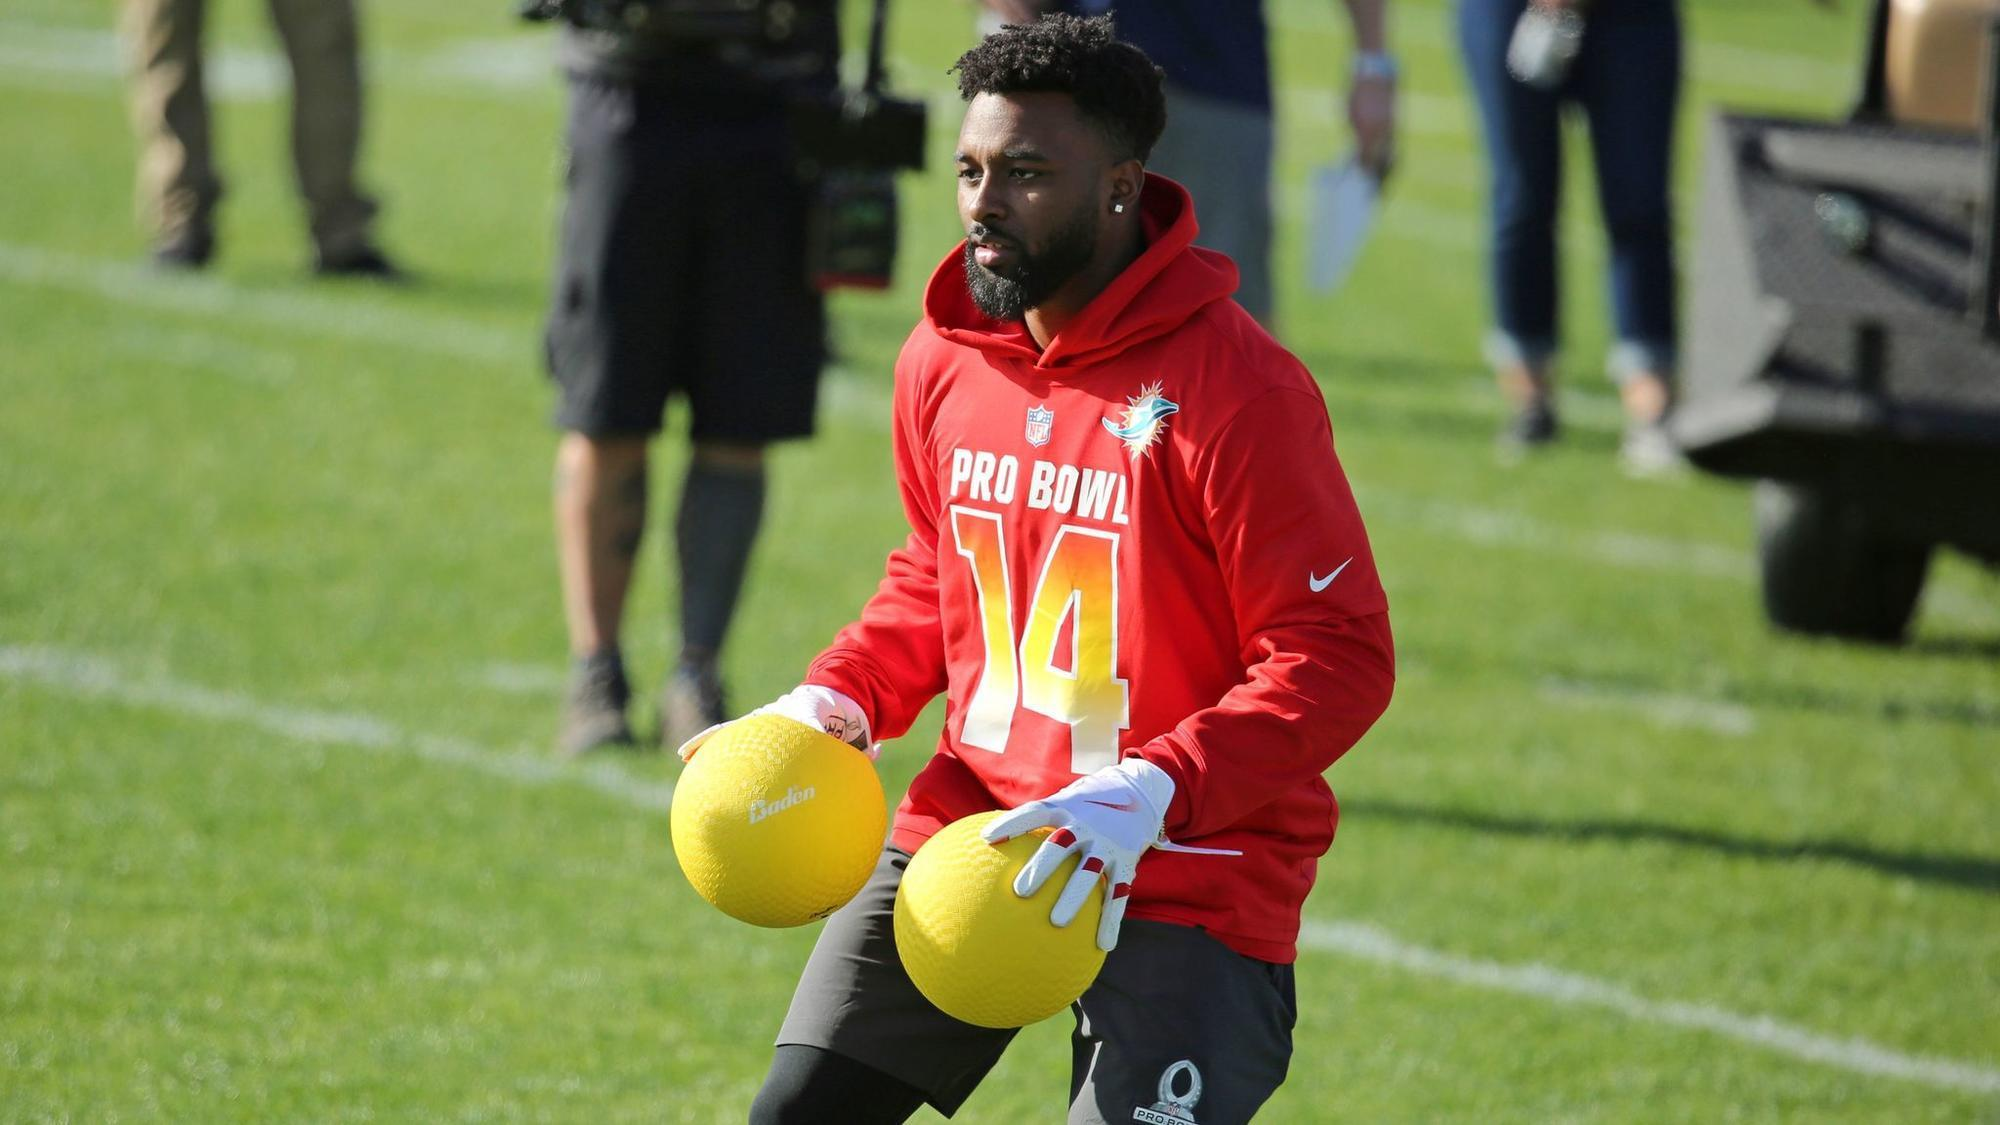 Dolphins  Jarvis Landry puts on memorable show in Pro Bowl Skills Showdown afce910a9